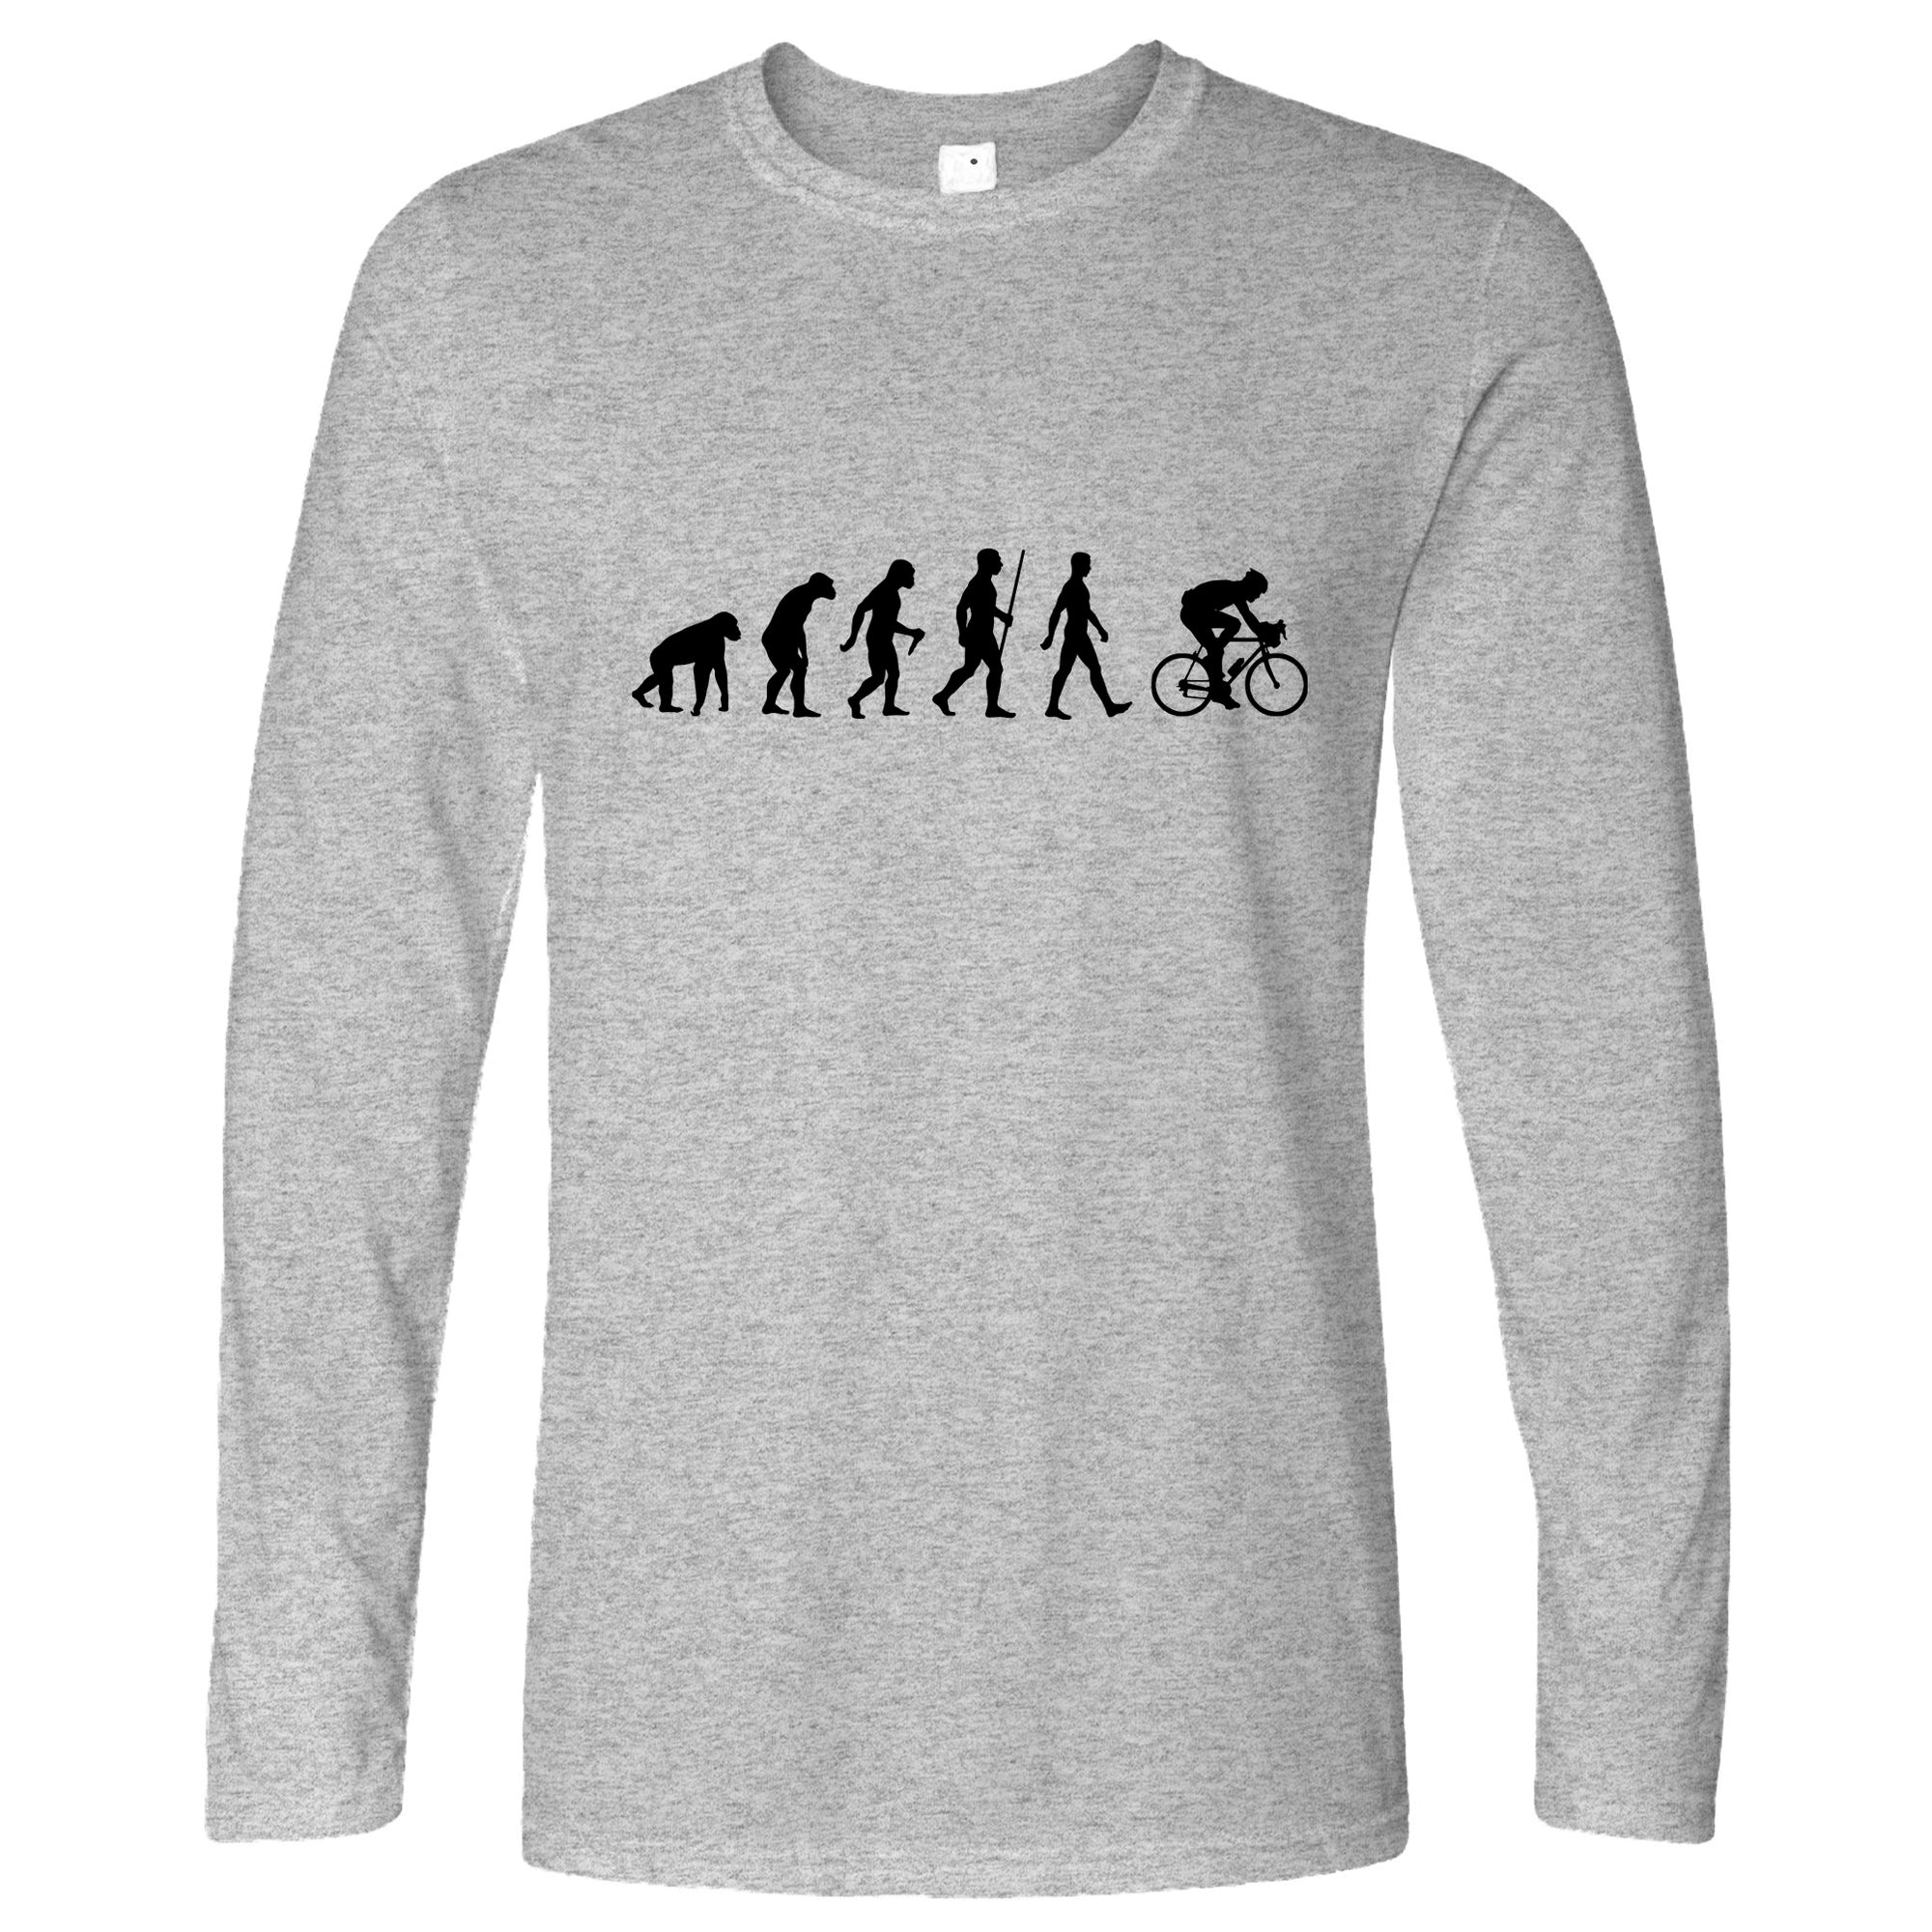 Novelty Long Sleeve The Evolution of Cycling T-Shirt